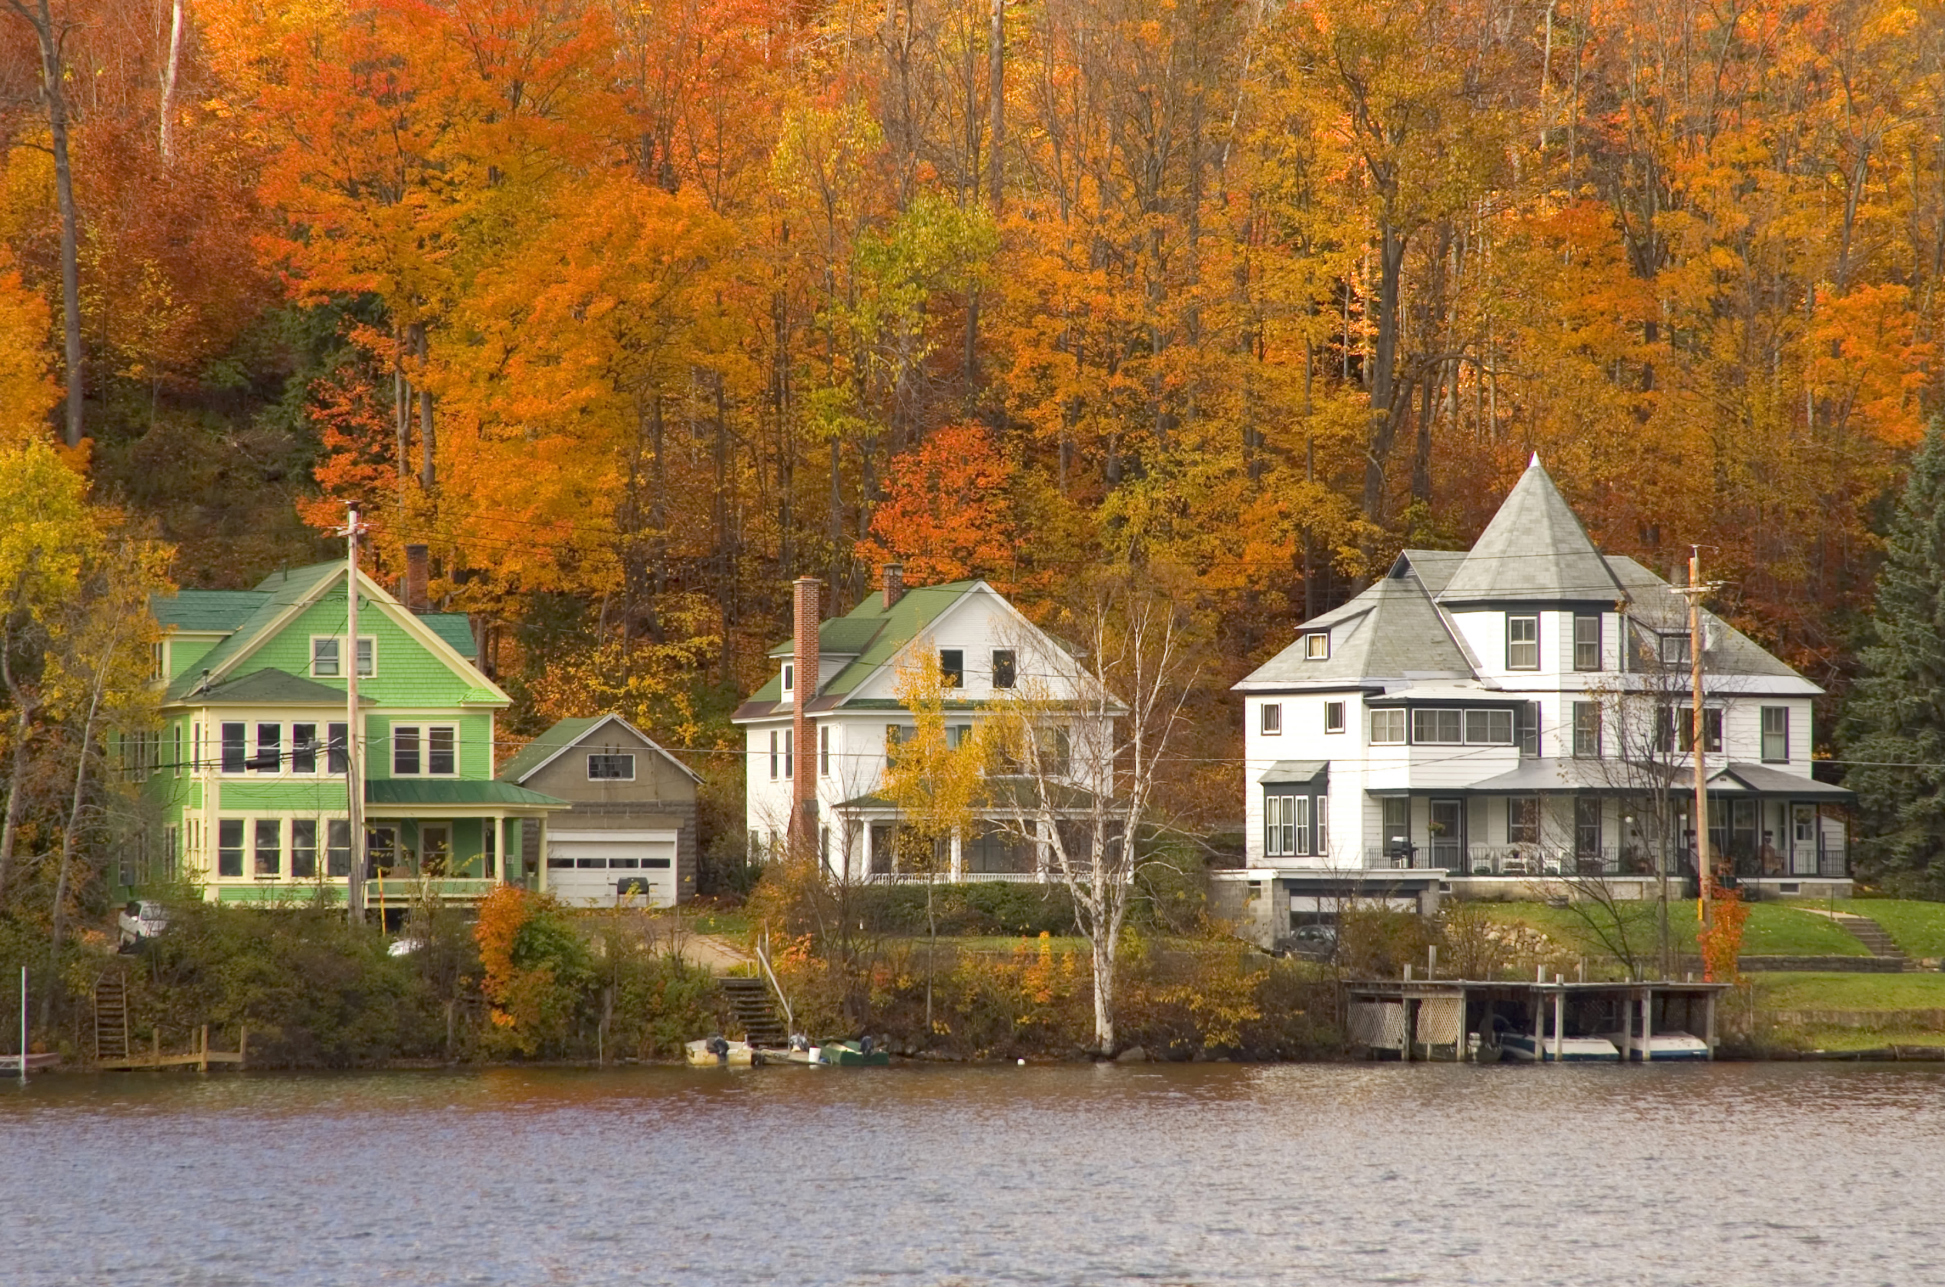 50 small towns across america with the most beautiful fall Best villages in america